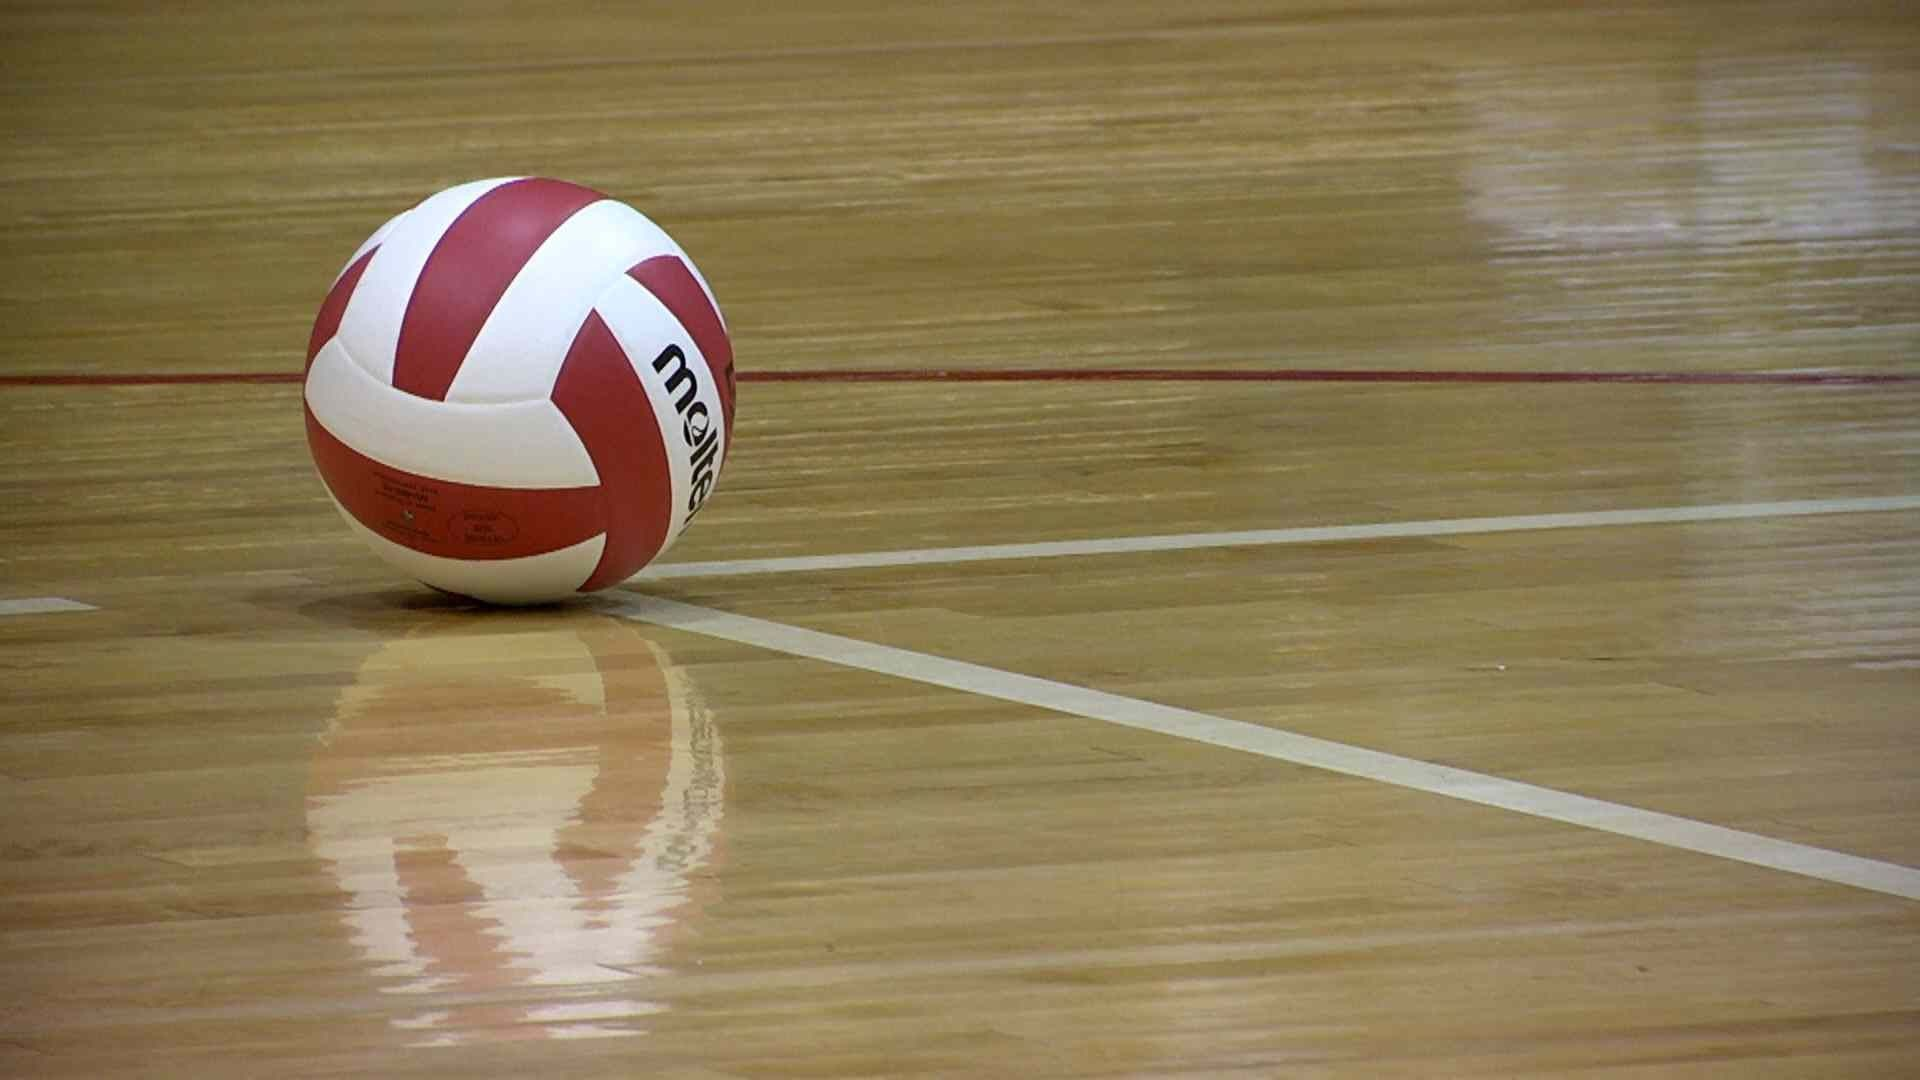 Volleyball Court Hd Wallpaper Volleyball Wallpaper Volleyball Backgrounds Volleyball